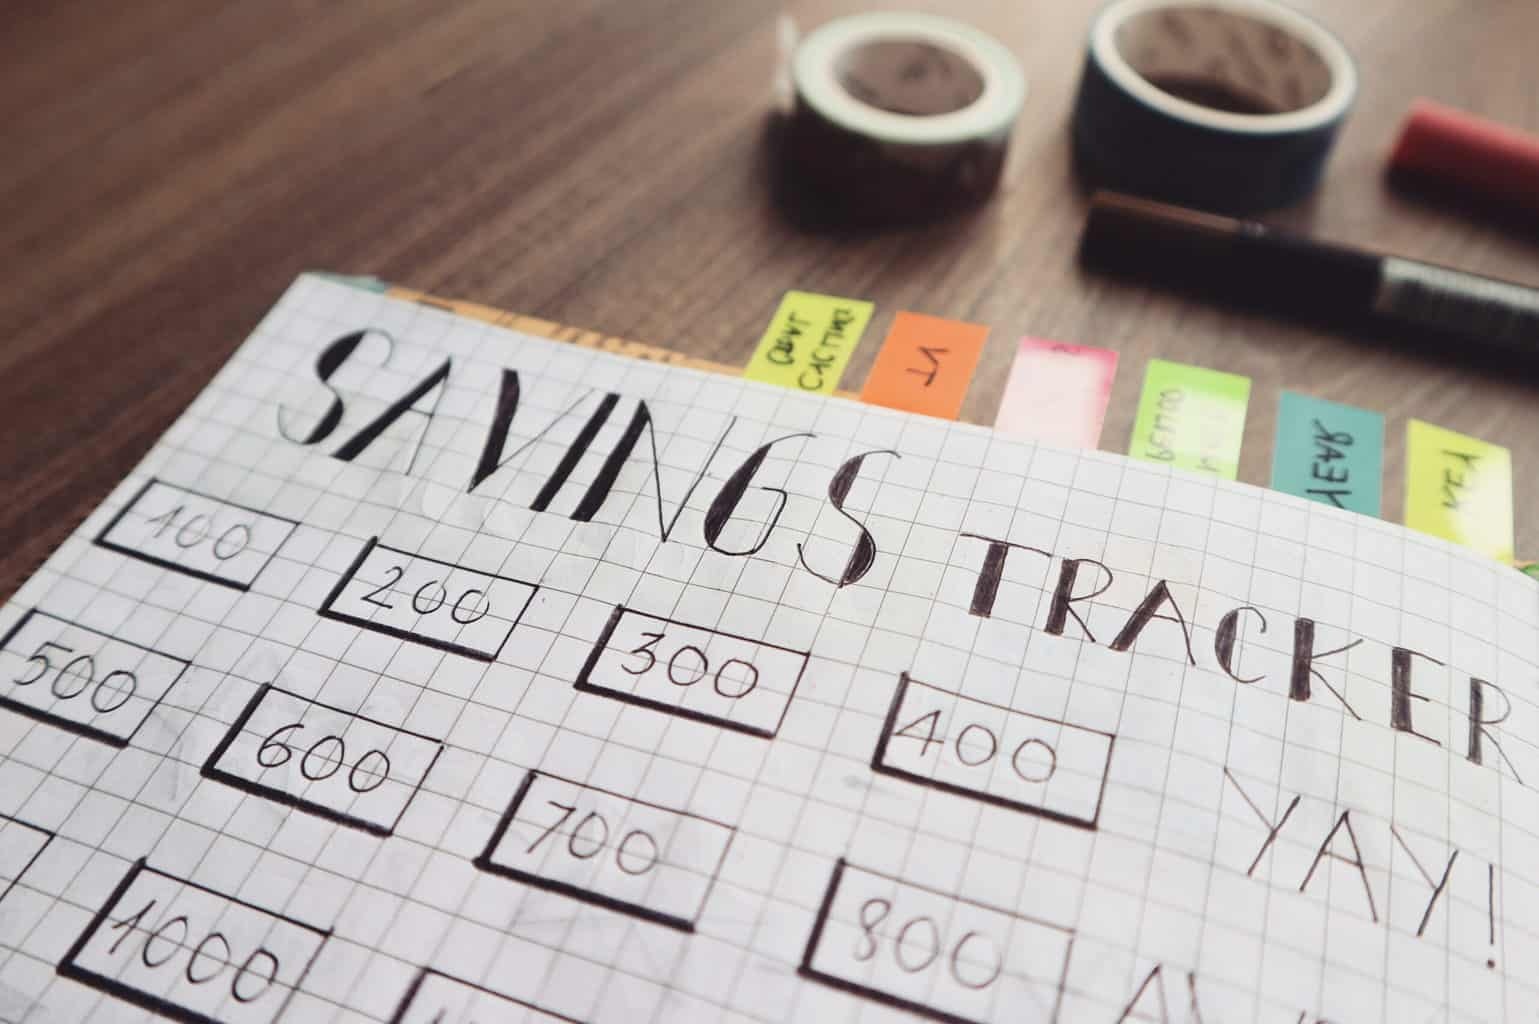 savings tracker spreadsheet on graph paper. Follow these tips for saving money in 2020